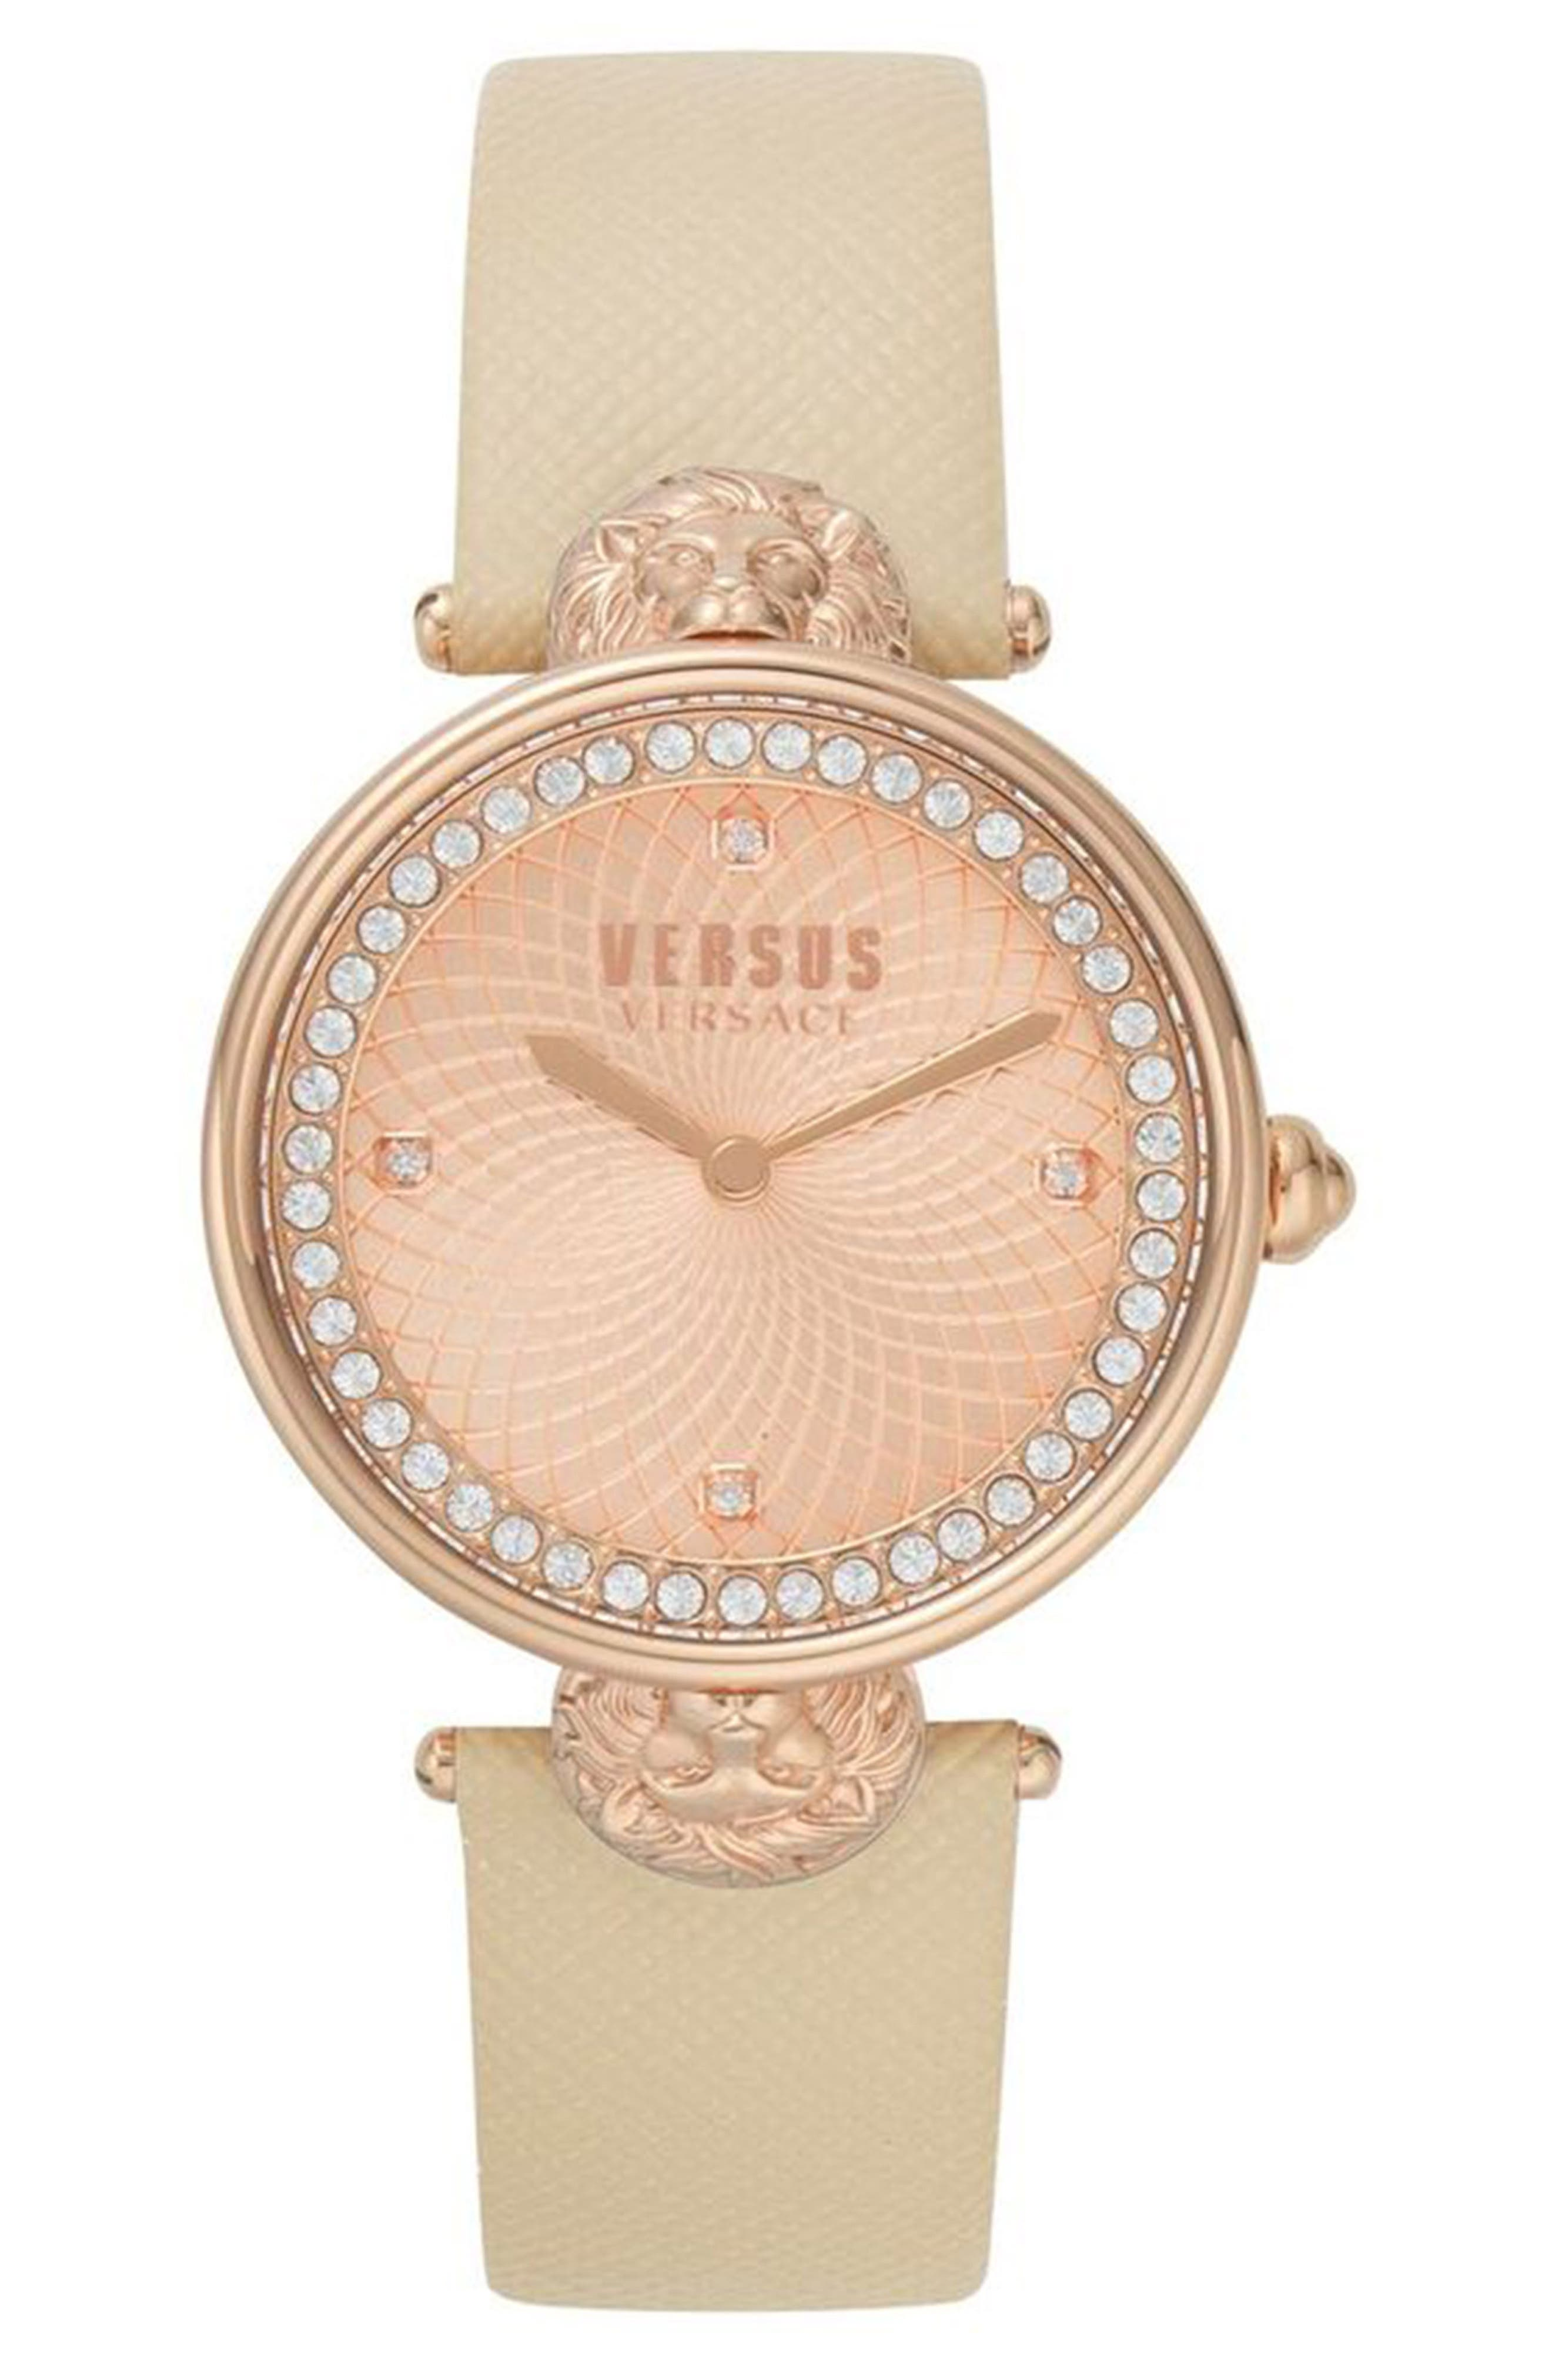 VERSUS Versace Victoria Leather Strap Watch, 34mm,                             Main thumbnail 1, color,                             BEIGE/ ROSE GOLD